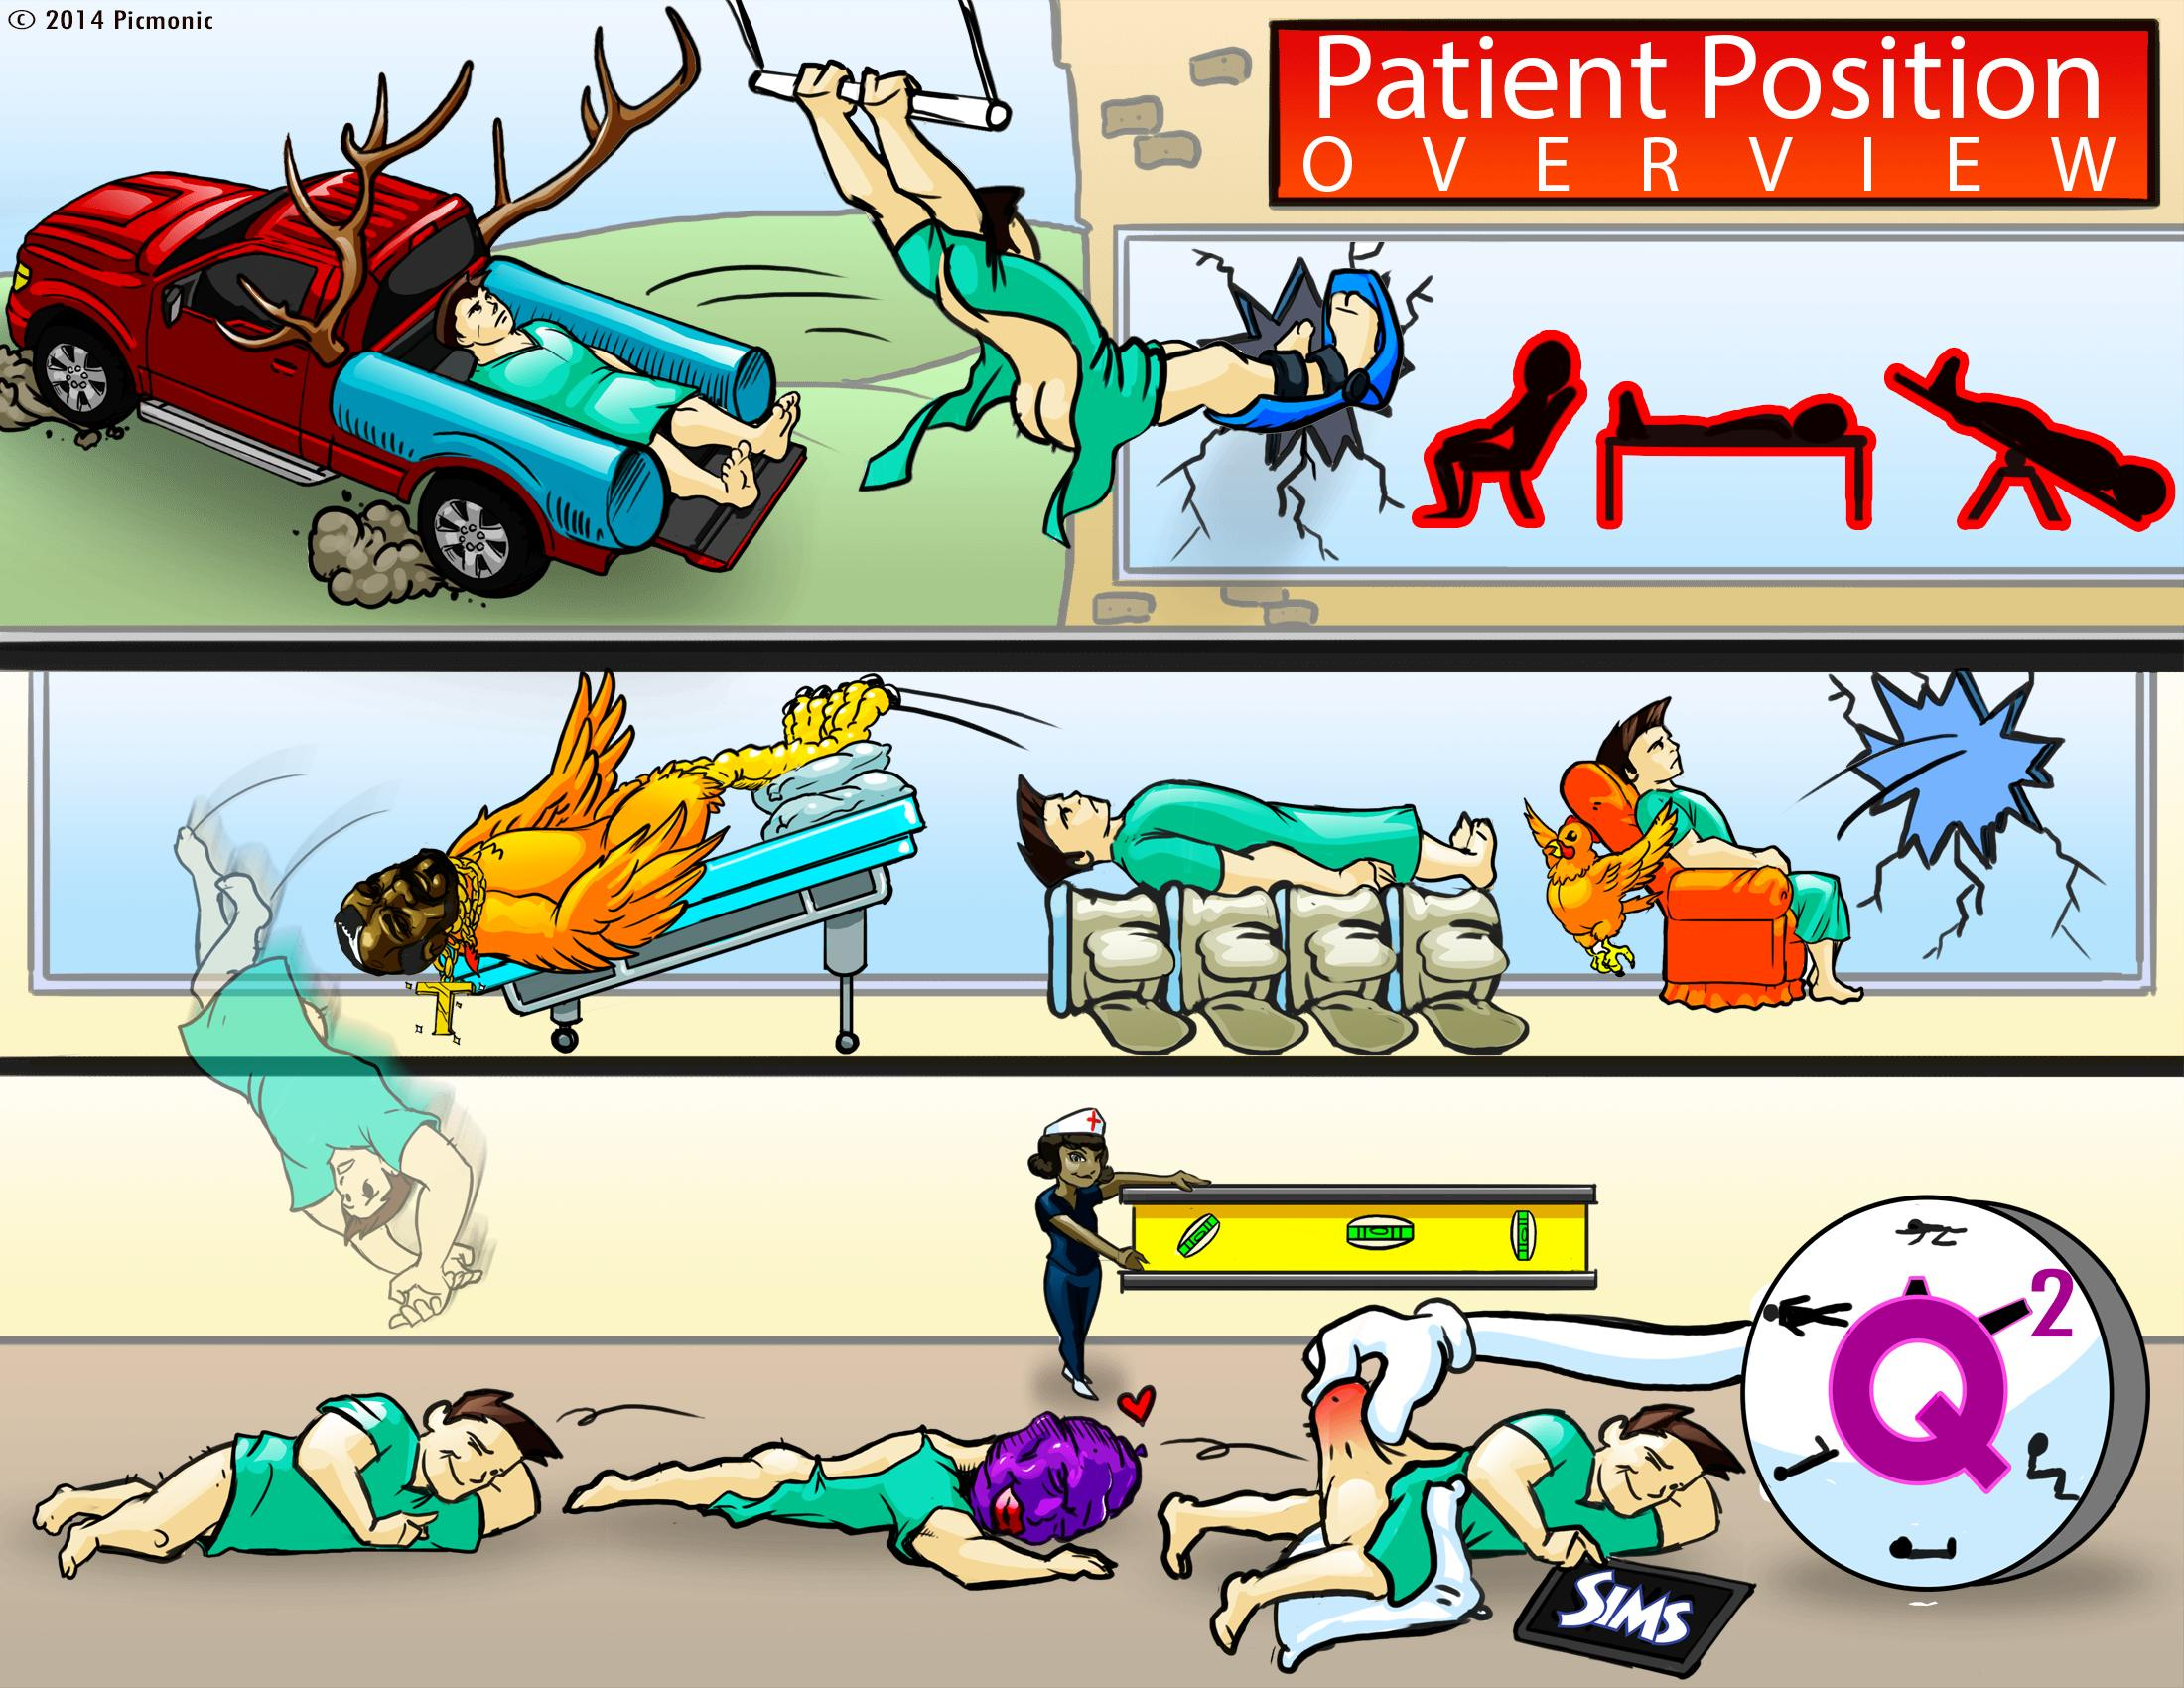 Patient Position Overview